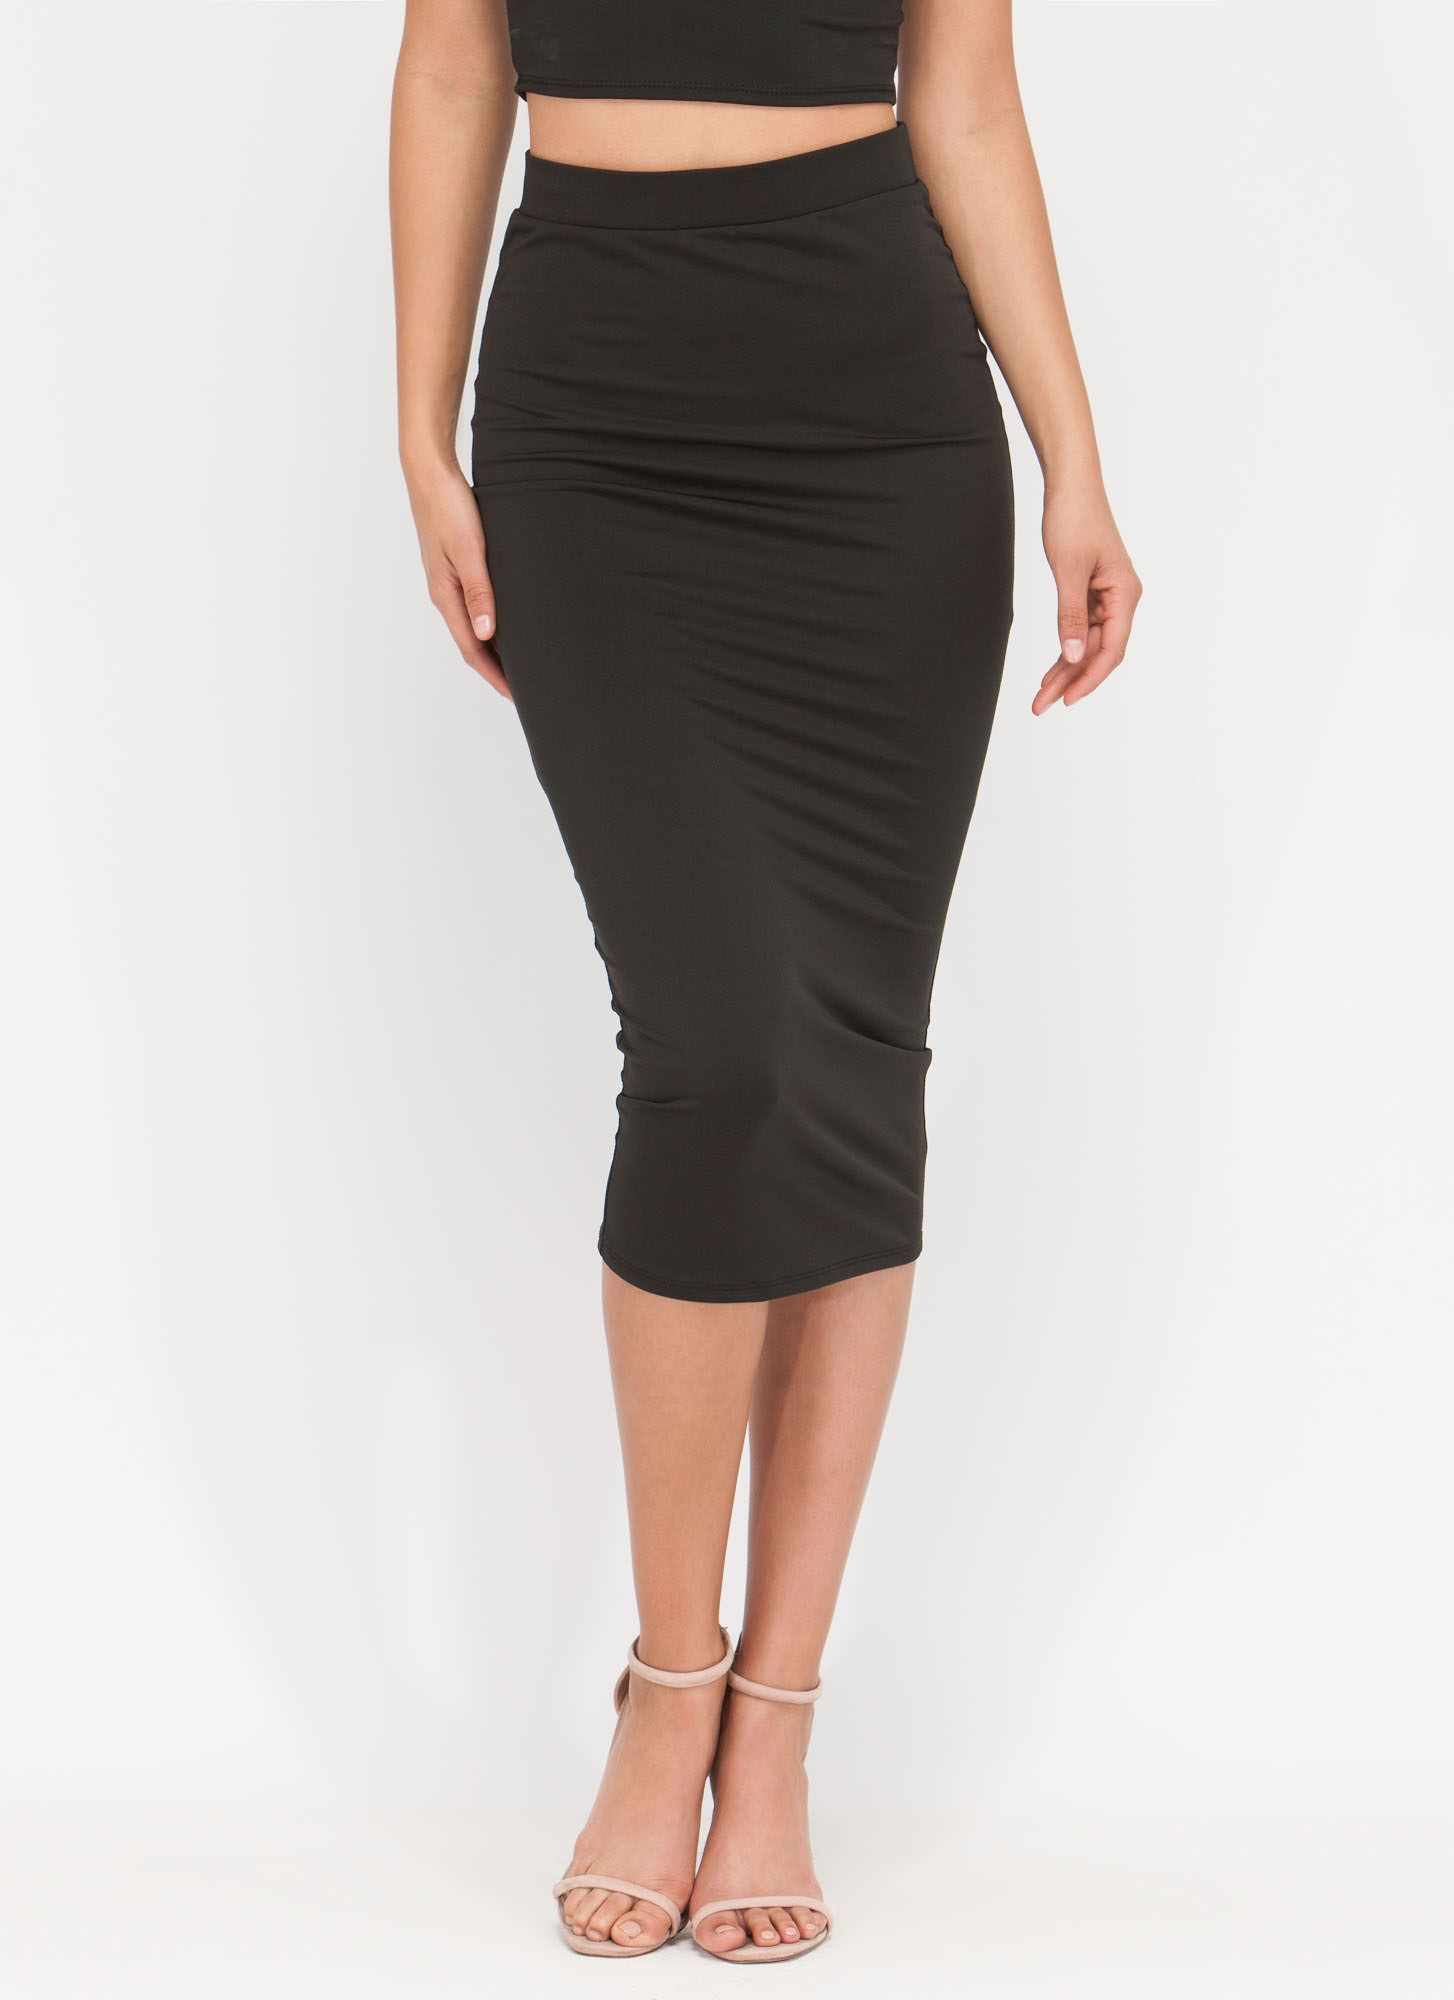 7ad879b92 In The Trend Zone Midi Skirt BLACK   affordable clothes I need ...